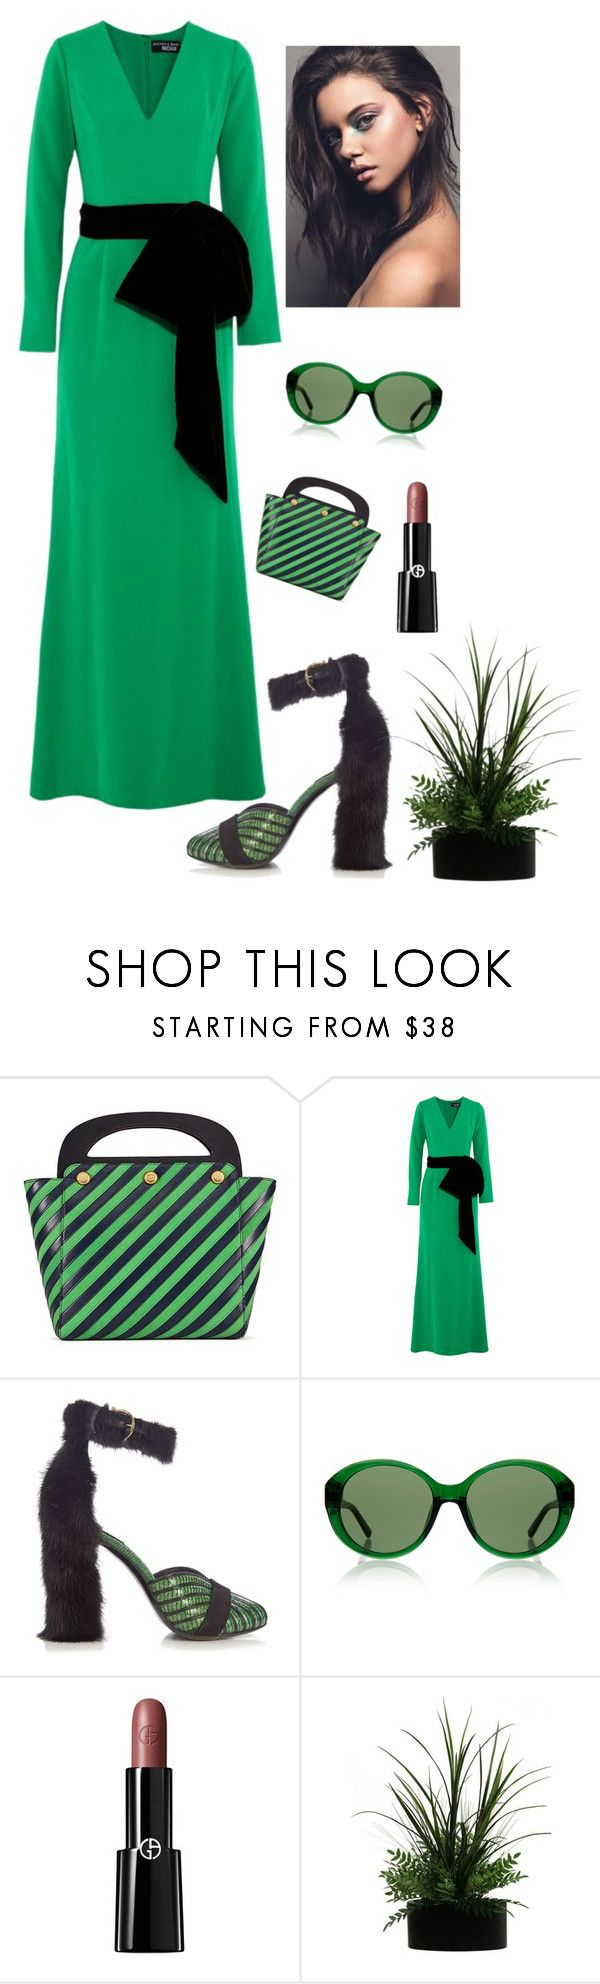 """""""Spring"""" by kotnourka ❤ liked on Polyvore featuring Tory Burch, NOIR Sachin + Babi, Salvatore Ferragamo, The Row and Giorgio Armani"""